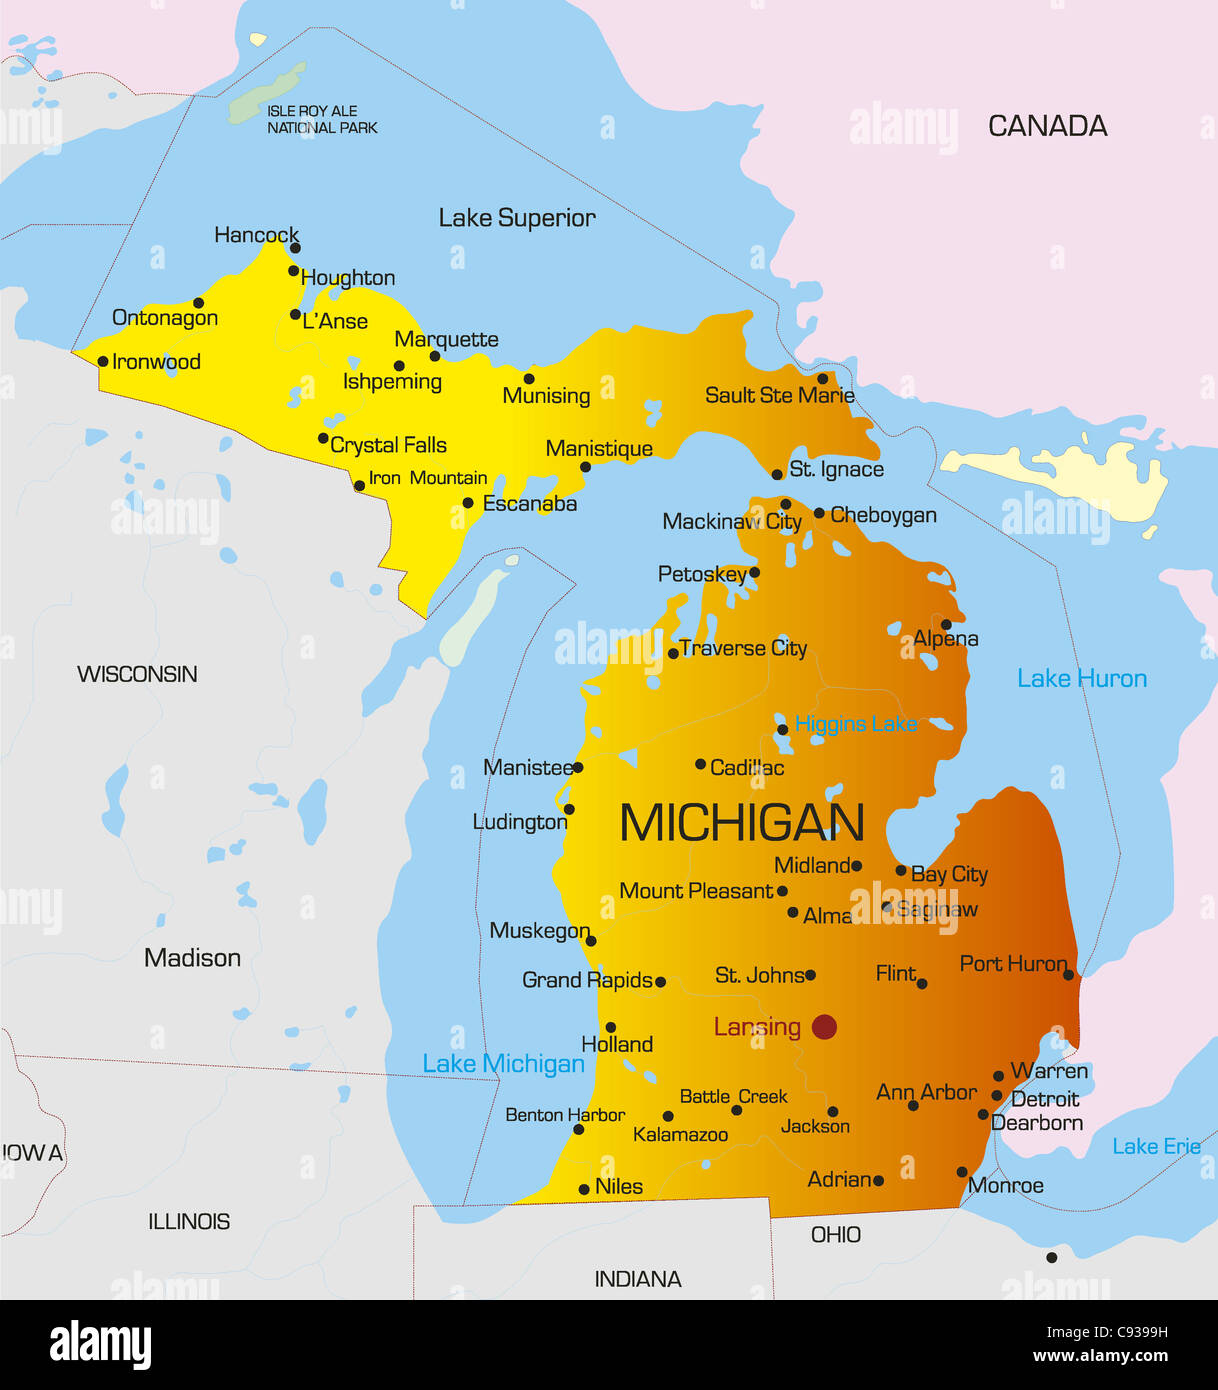 Vector Color Map Of Michigan State Usa Stock Photo Royalty Free - Michigan state usa map